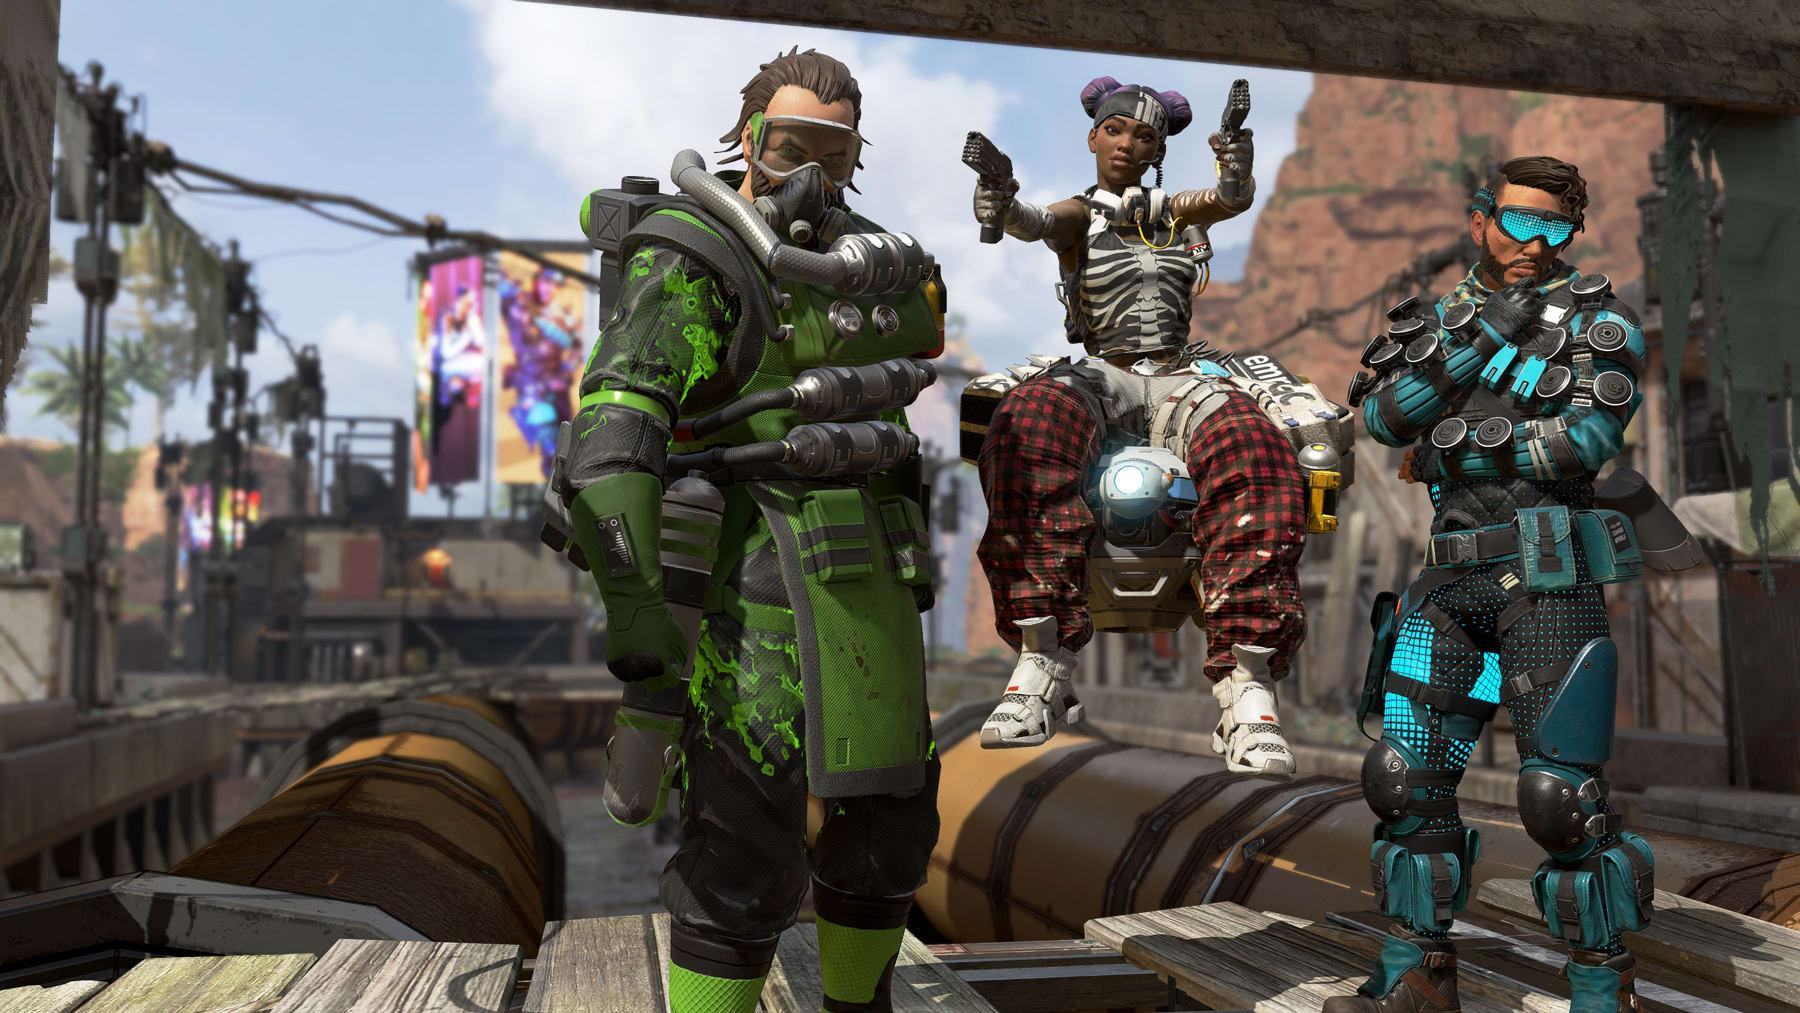 Apex Legends' isn't 'Titanfall 3', and that's okay | Engadget